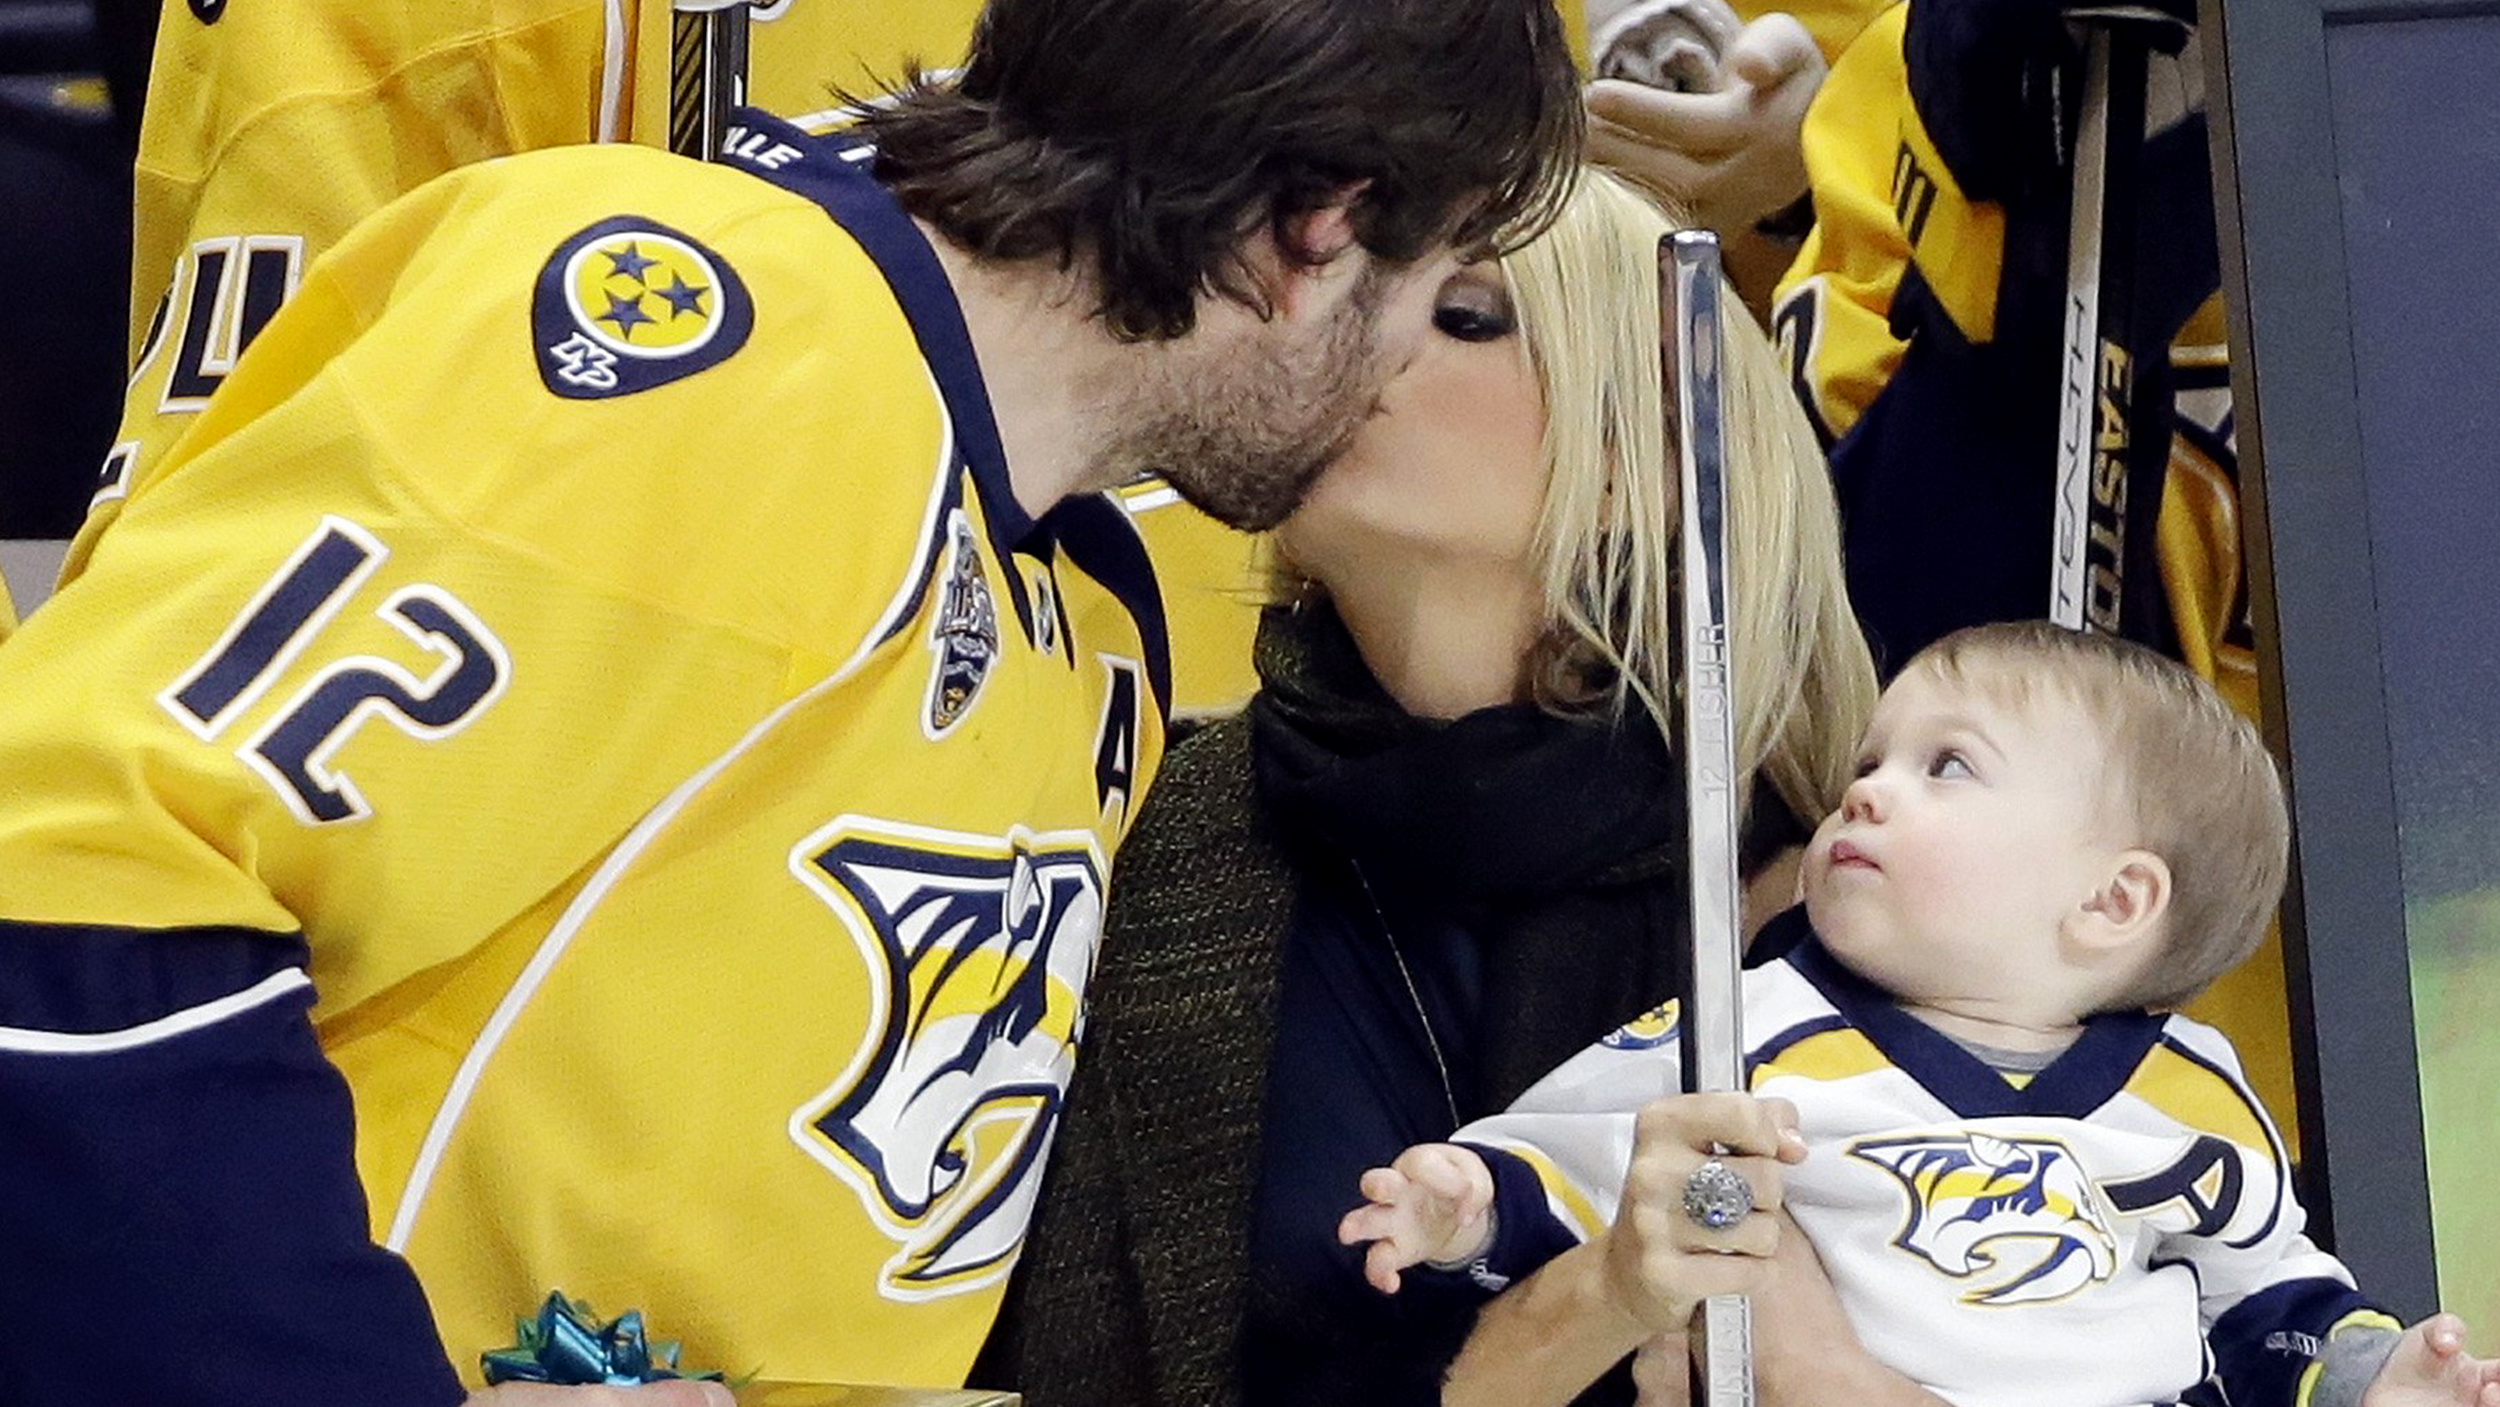 Carrie underwood and son celebrate hubby mike fisher 39 s 1 for Who is carrie underwood married too